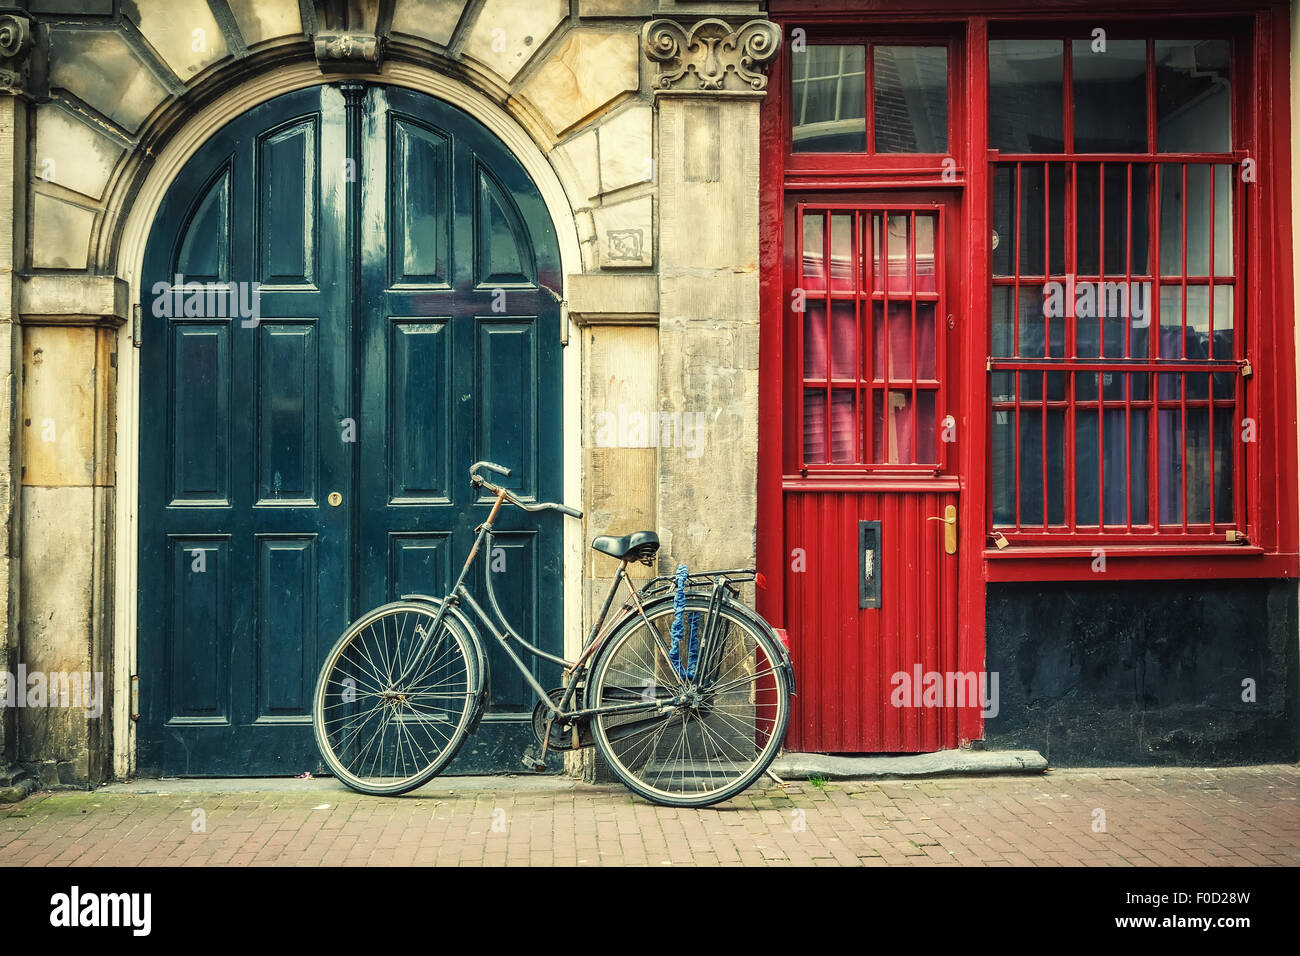 Bicycle in Amsterdam - Stock Image